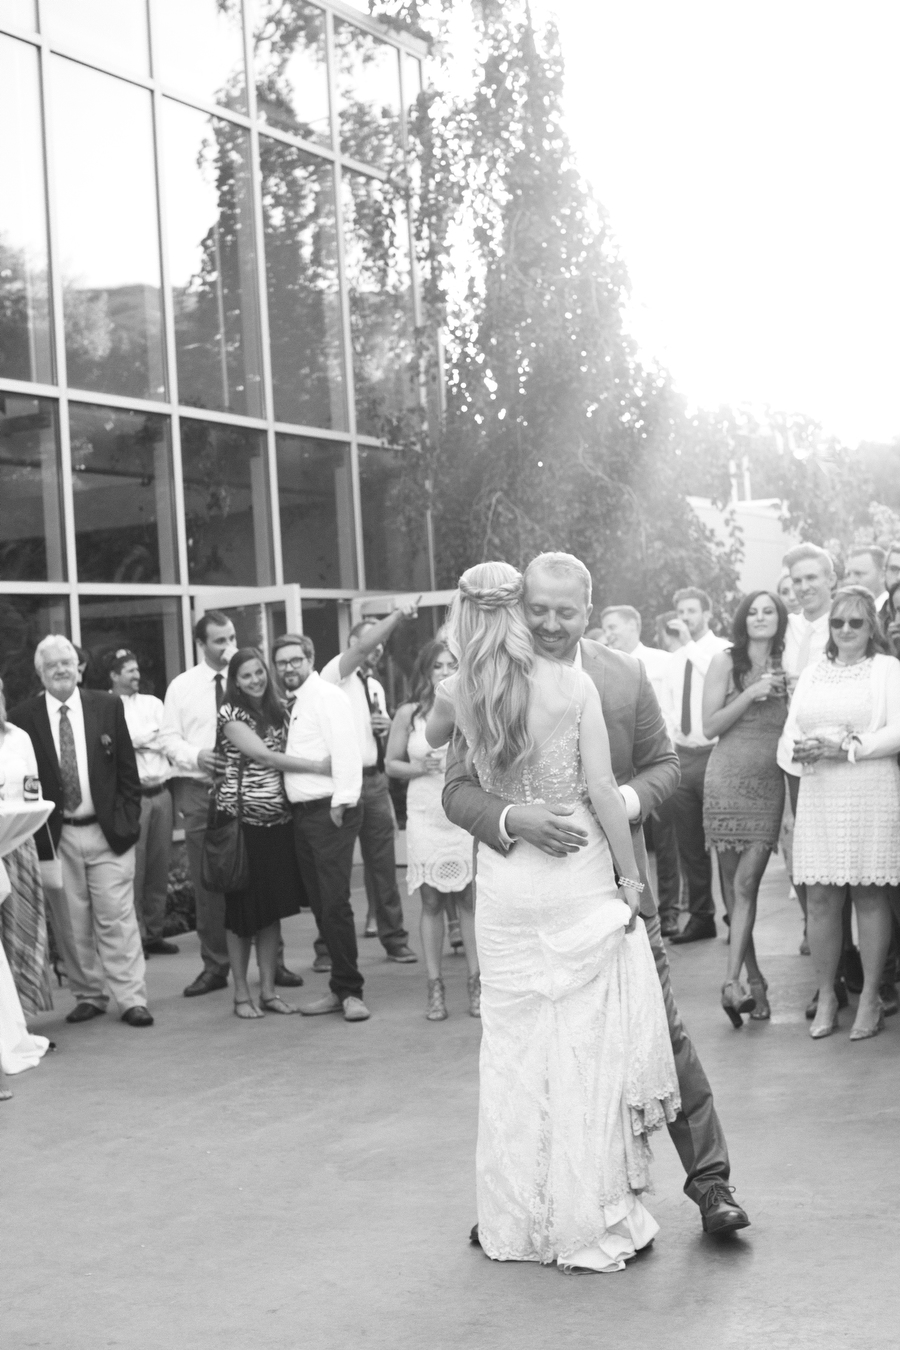 MARIACORONAPHOTOGRAPHY_WEDDING_UTAH_0269.JPG